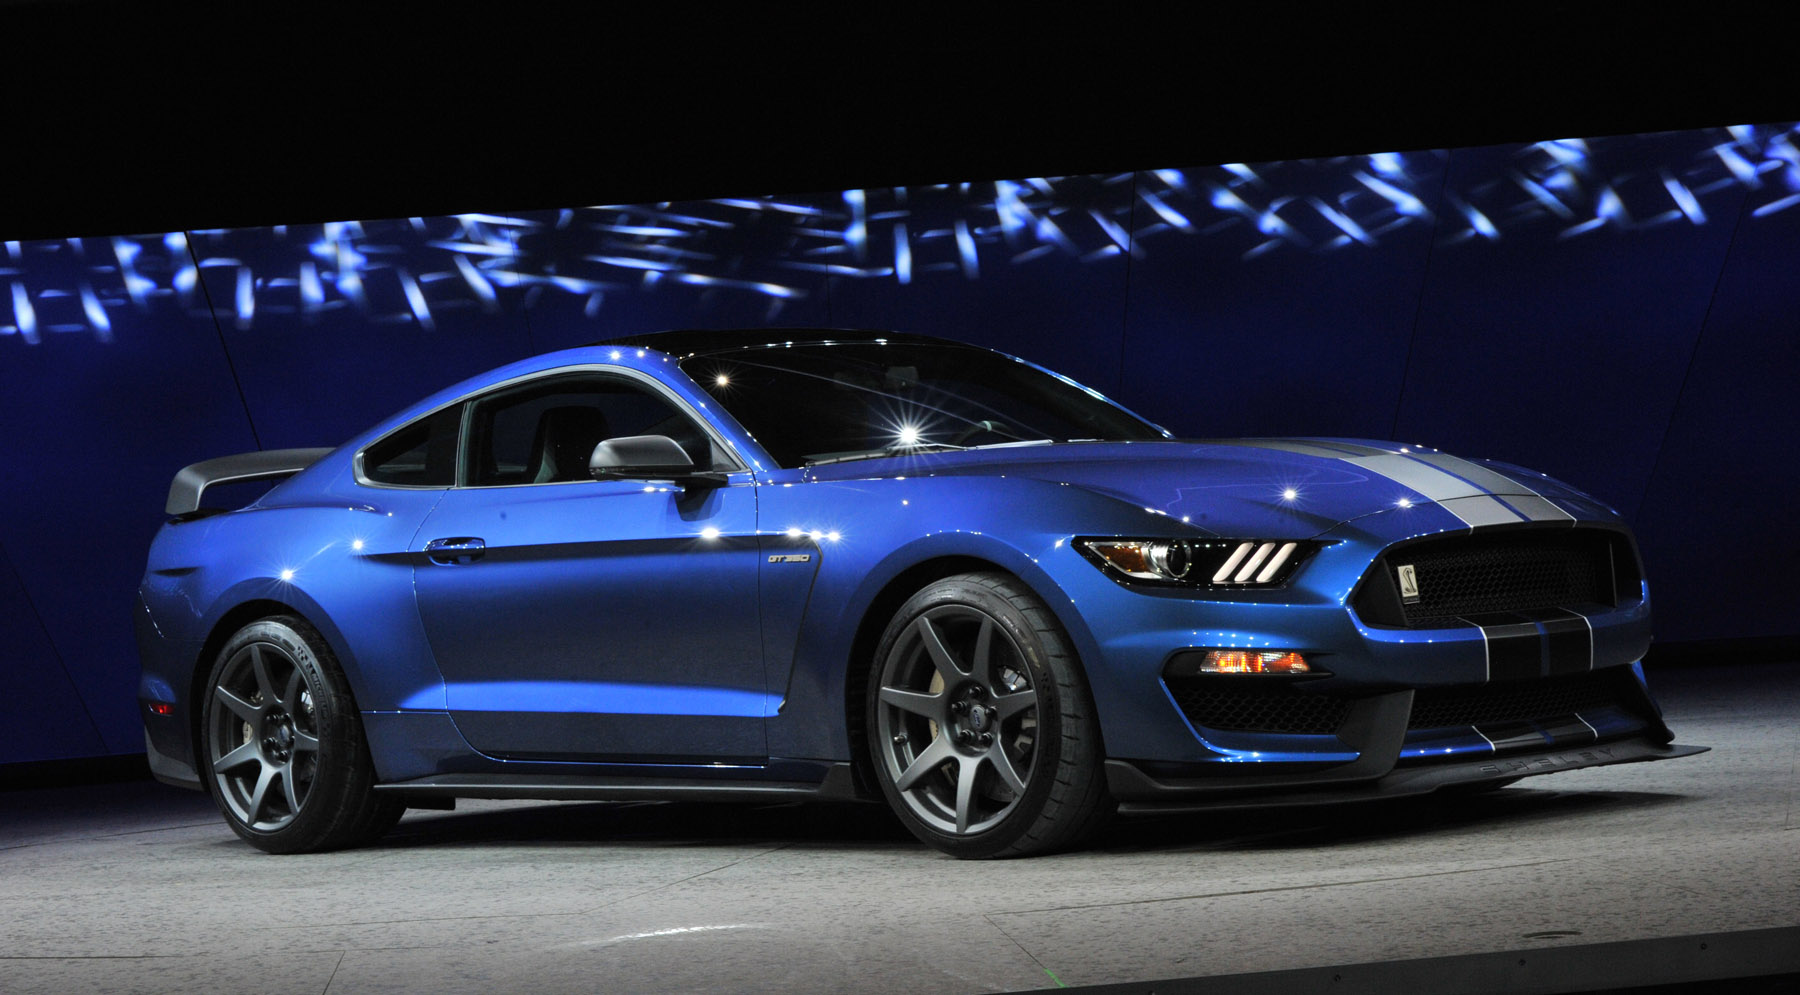 2016 ford mustang shelby gt350r live photos 2015 naias carfanatics blog. Black Bedroom Furniture Sets. Home Design Ideas